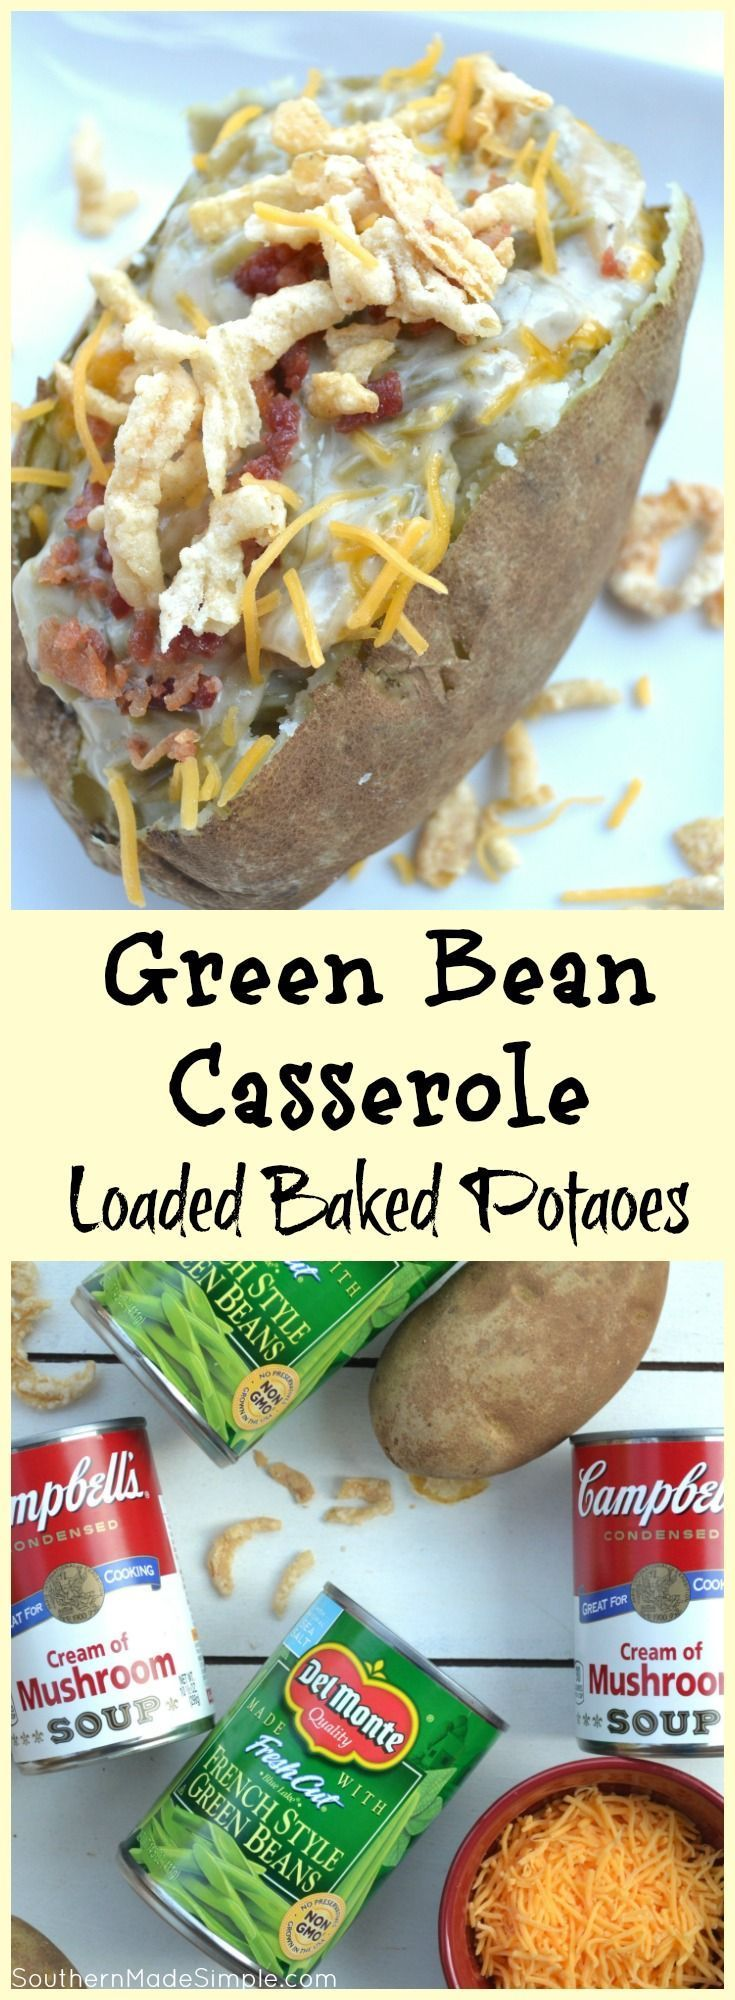 Forget everything you know about traditional green bean casserole - this Green Bean Casserole Stuffed Loaded Baked Potato is THE way to fill you and your friends up on Thanksgiving! #GiveThanksBeFull #ad @Target